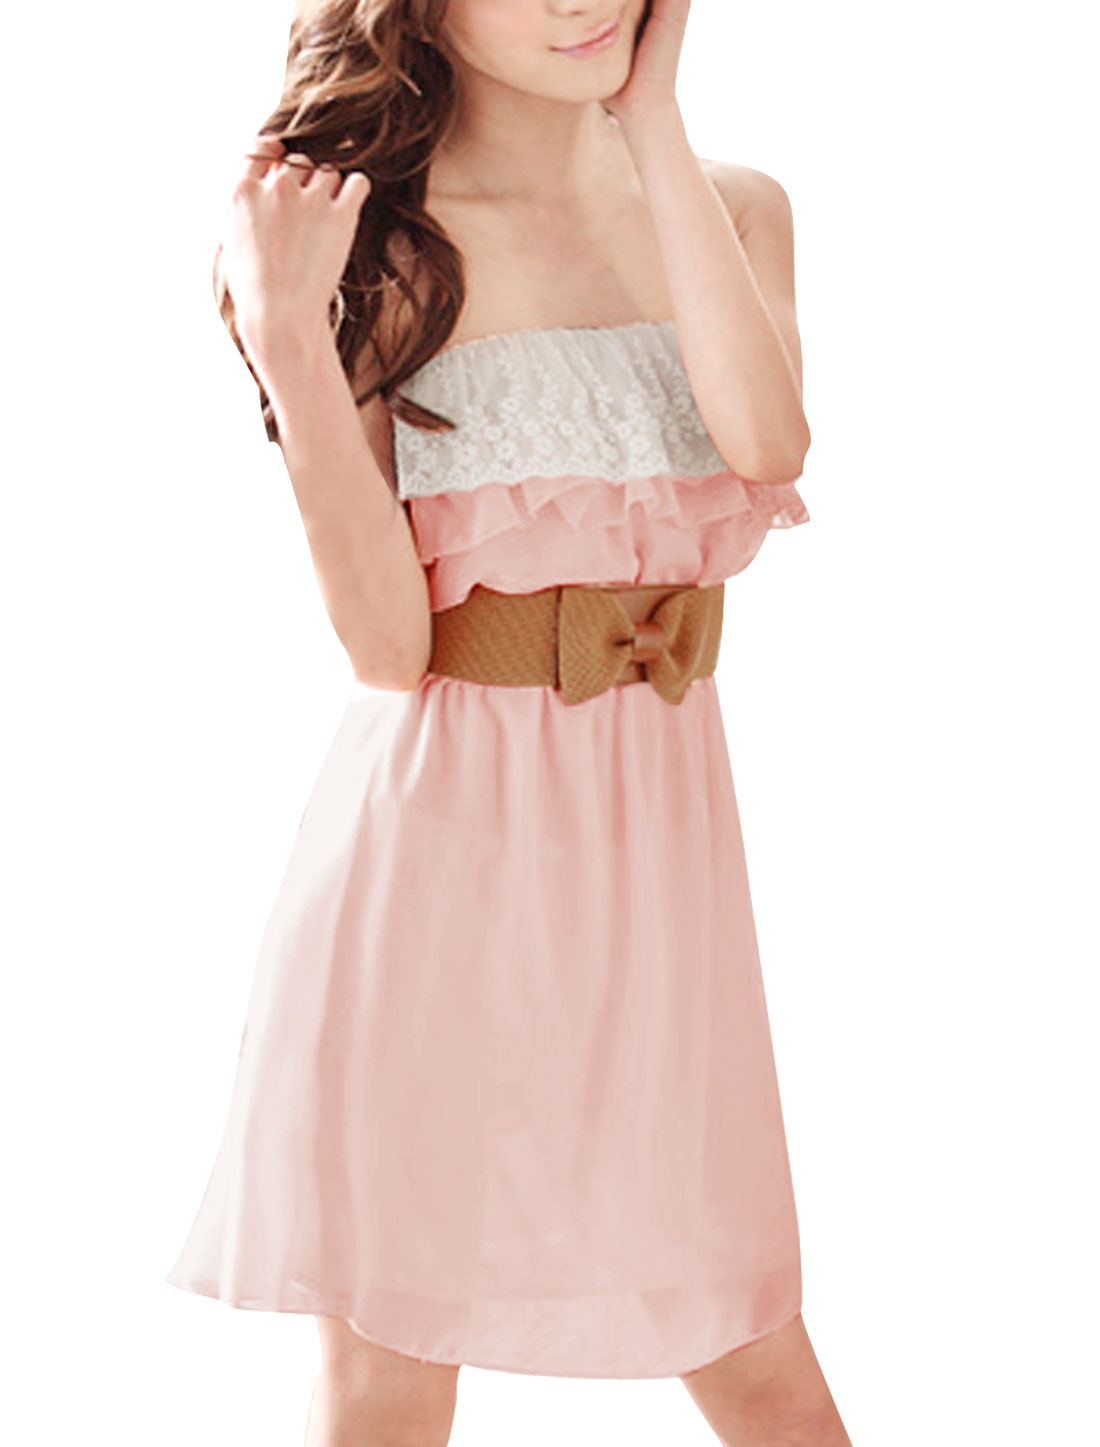 Ladies Chic Strapless Elastic Bust Girth Design Lace Splice Pink Mini Dress M